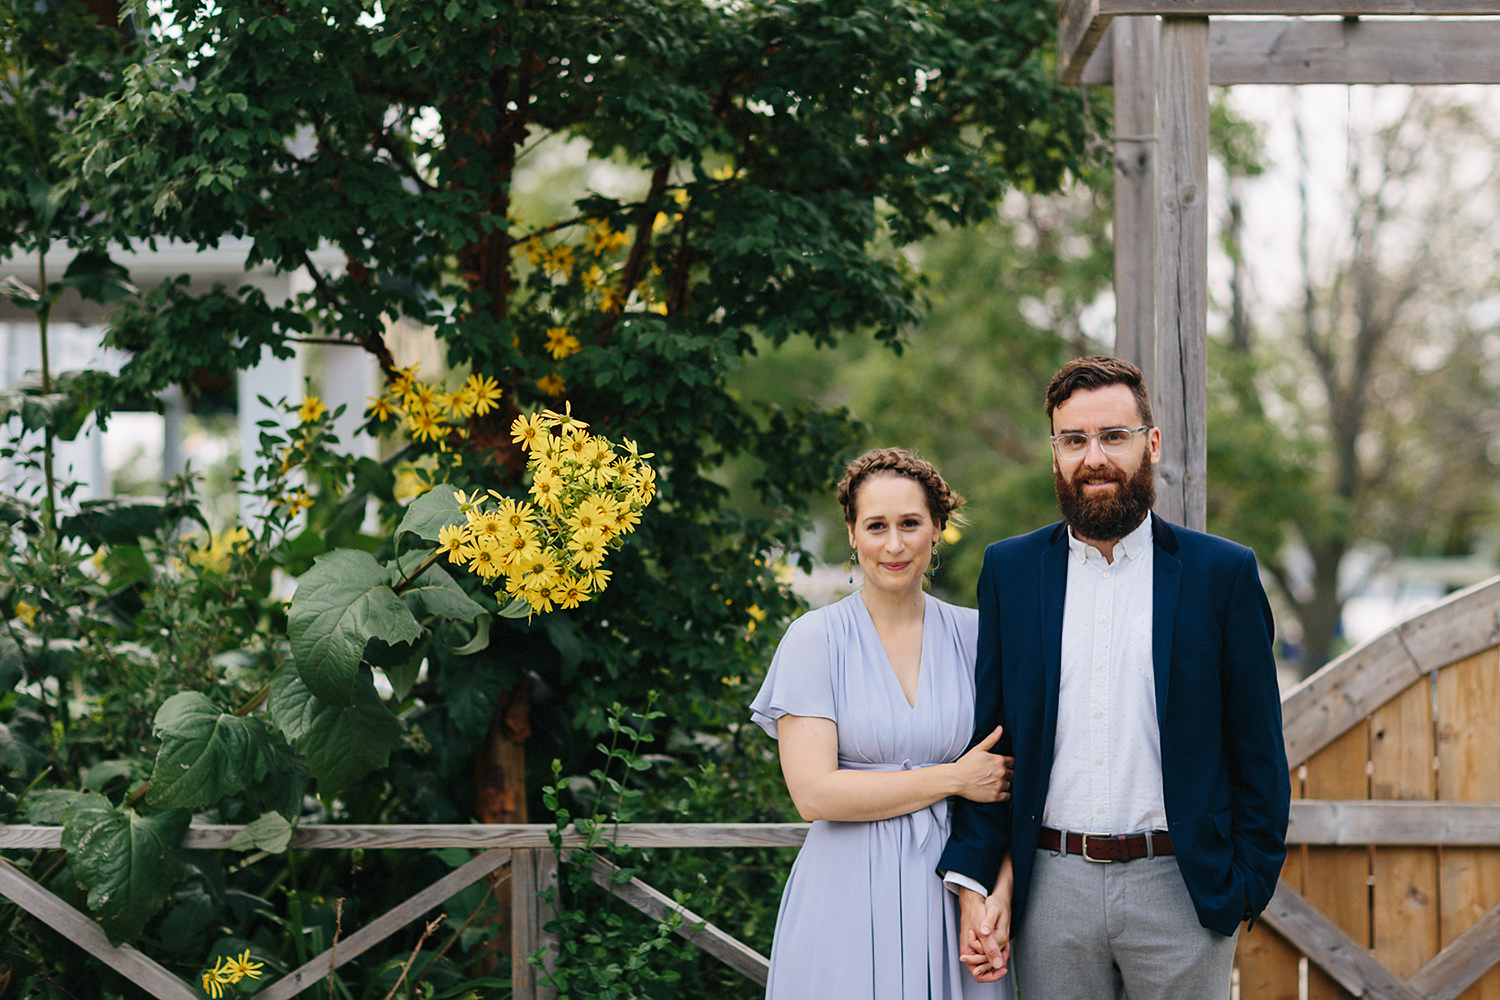 Toronto-Island-Wedding-Toronto-Best-Film-Wedding-Photographers-3b-photography-analog-photography-wards-island-clubhouse-junebug-weddings-vintage-venue-reception-cocktail-hour-candid-guests-mingling-portrait.jpg